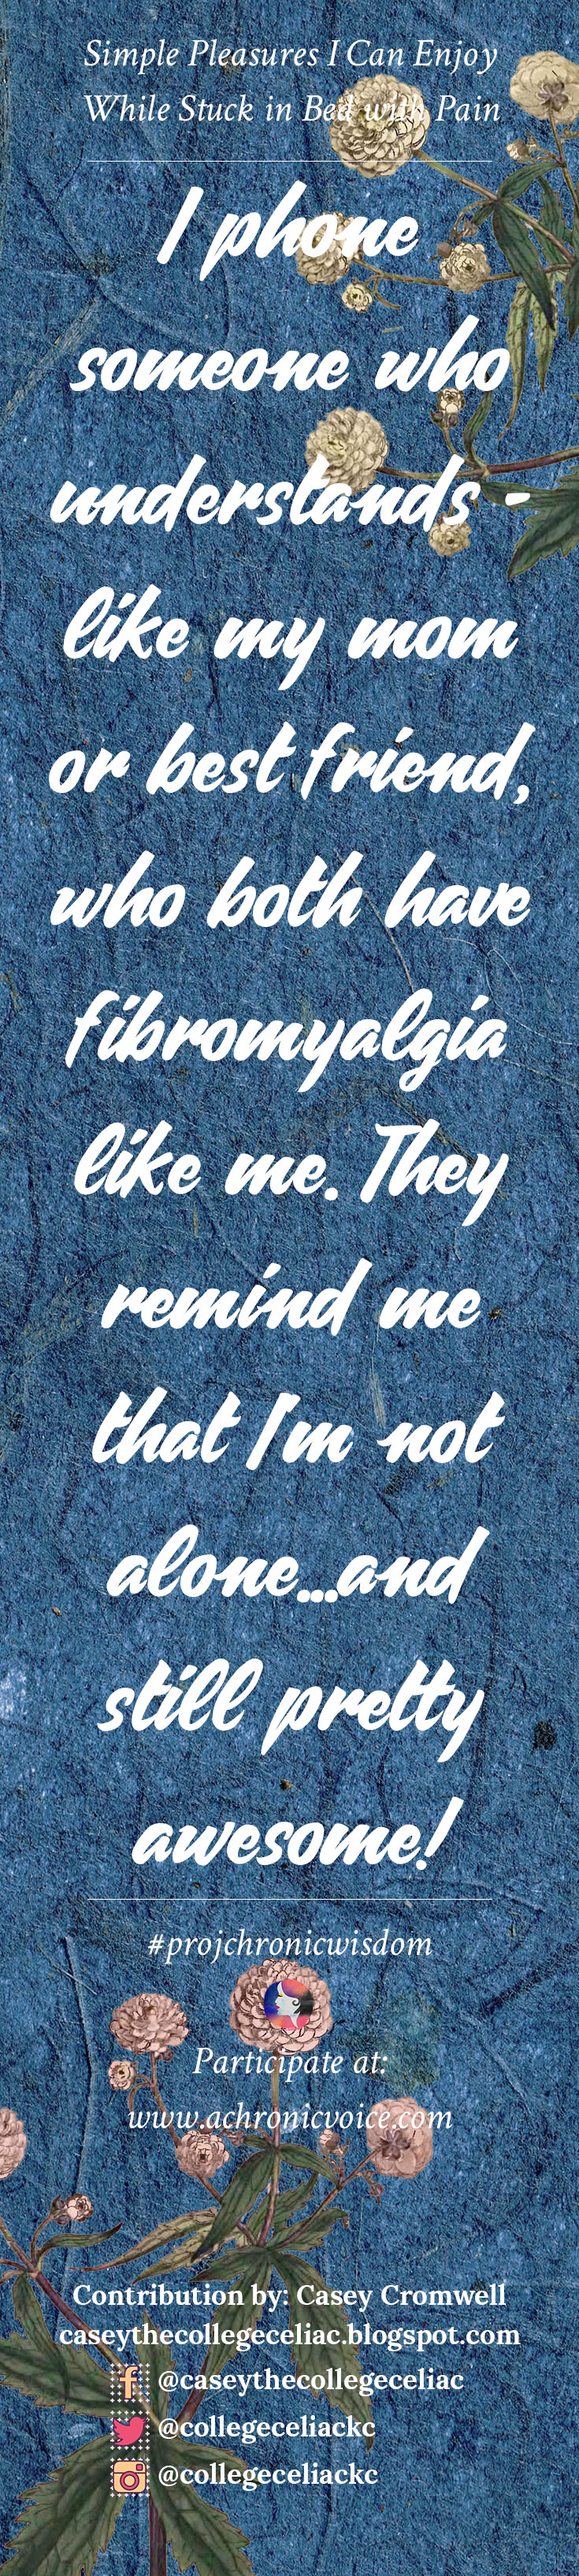 """""""I phone someone who understands - like my mom or best friend, who both have fibromyalgia like me. They remind me that I'm not alone...and still pretty awesome!"""" - Casey Cromwell 